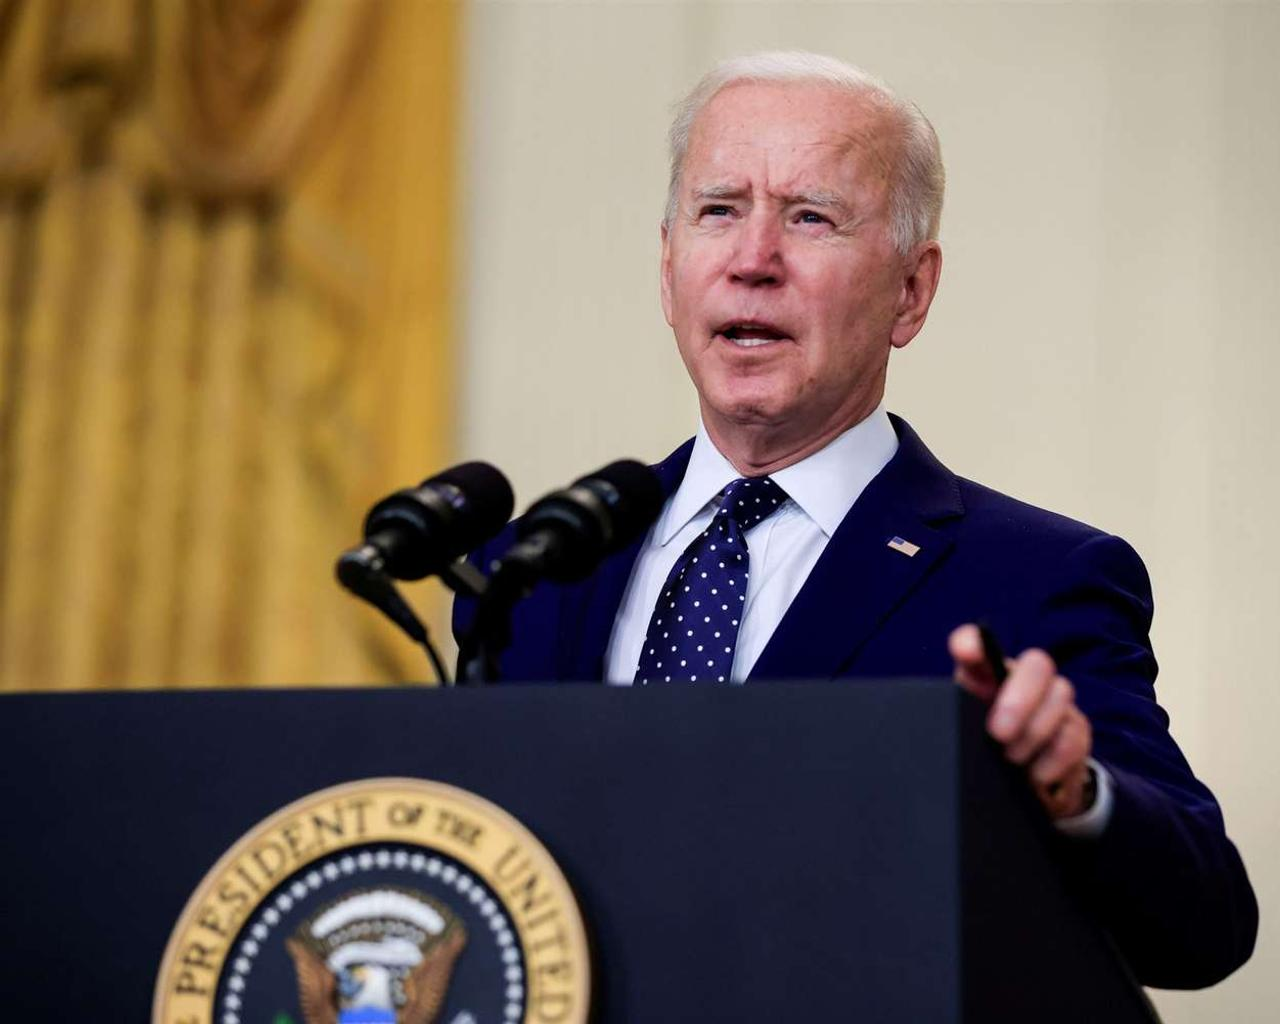 Biden to push for more vaccinations as administration reaches 200 million-dose milestone